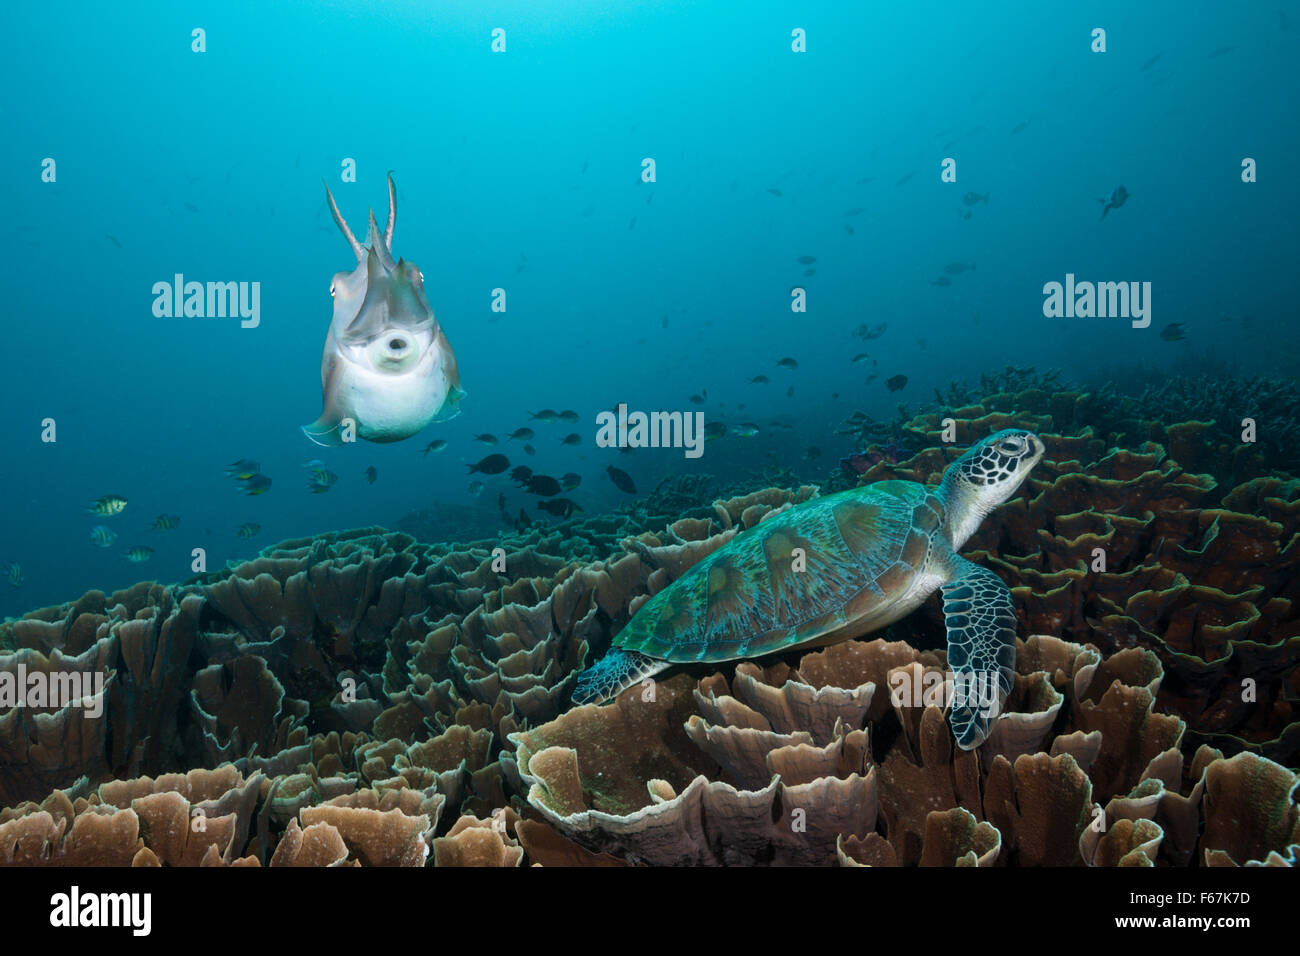 Broadclub Cuttlefish and Green Sea Turtle, Sepia latimanus, Komodo National Park, Indonesia - Stock Image